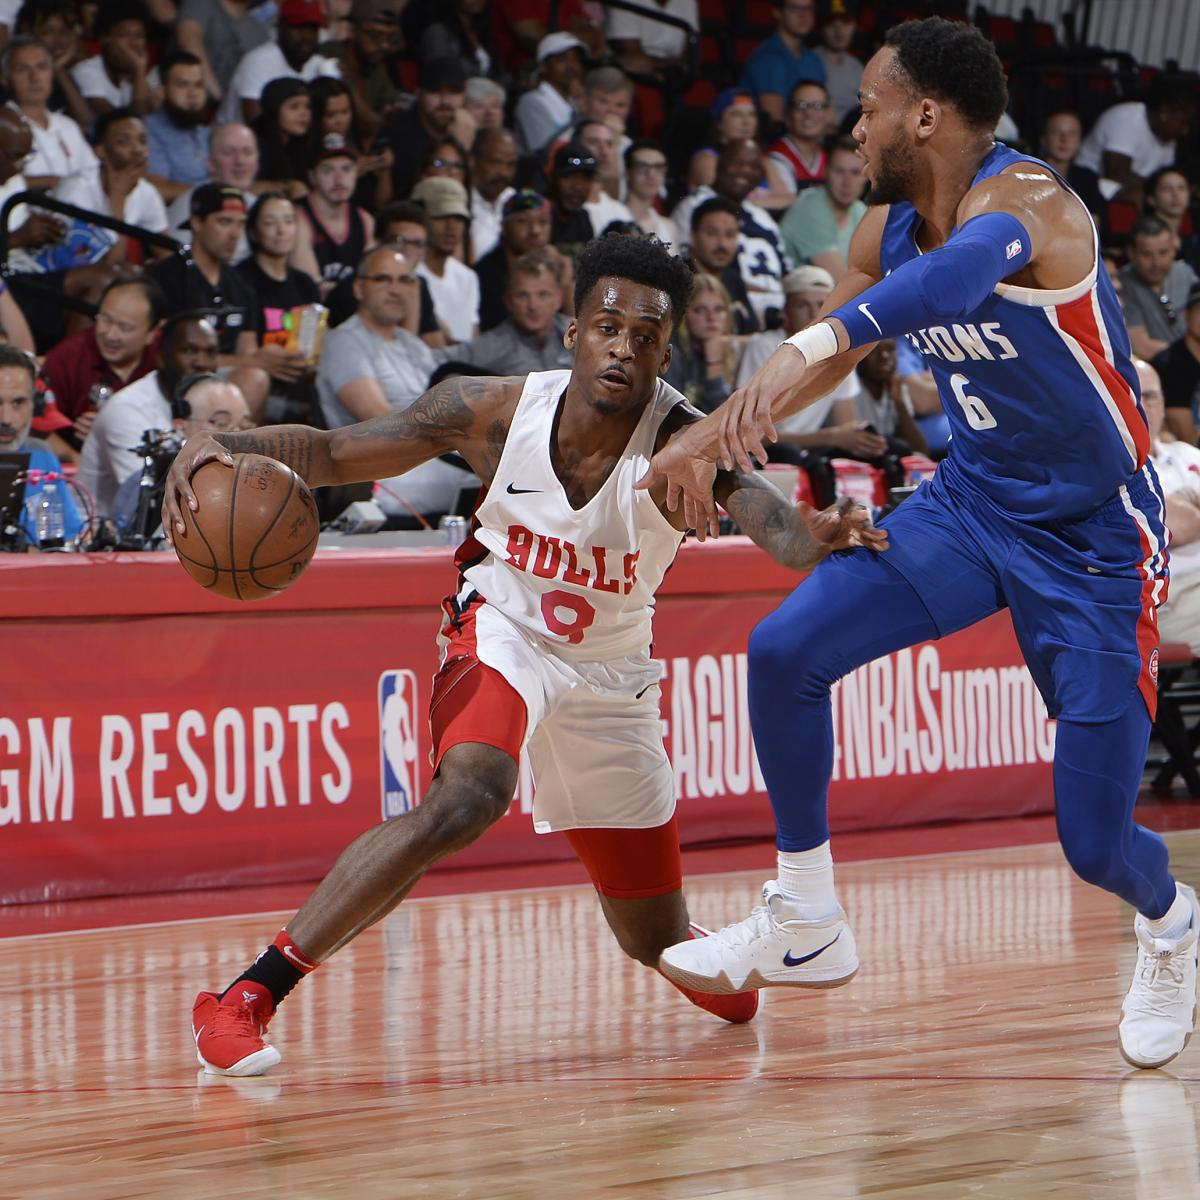 Quakertown Blazers 2018 Schedule: NBA Summer League 2018: Saturday Scores And Highlights